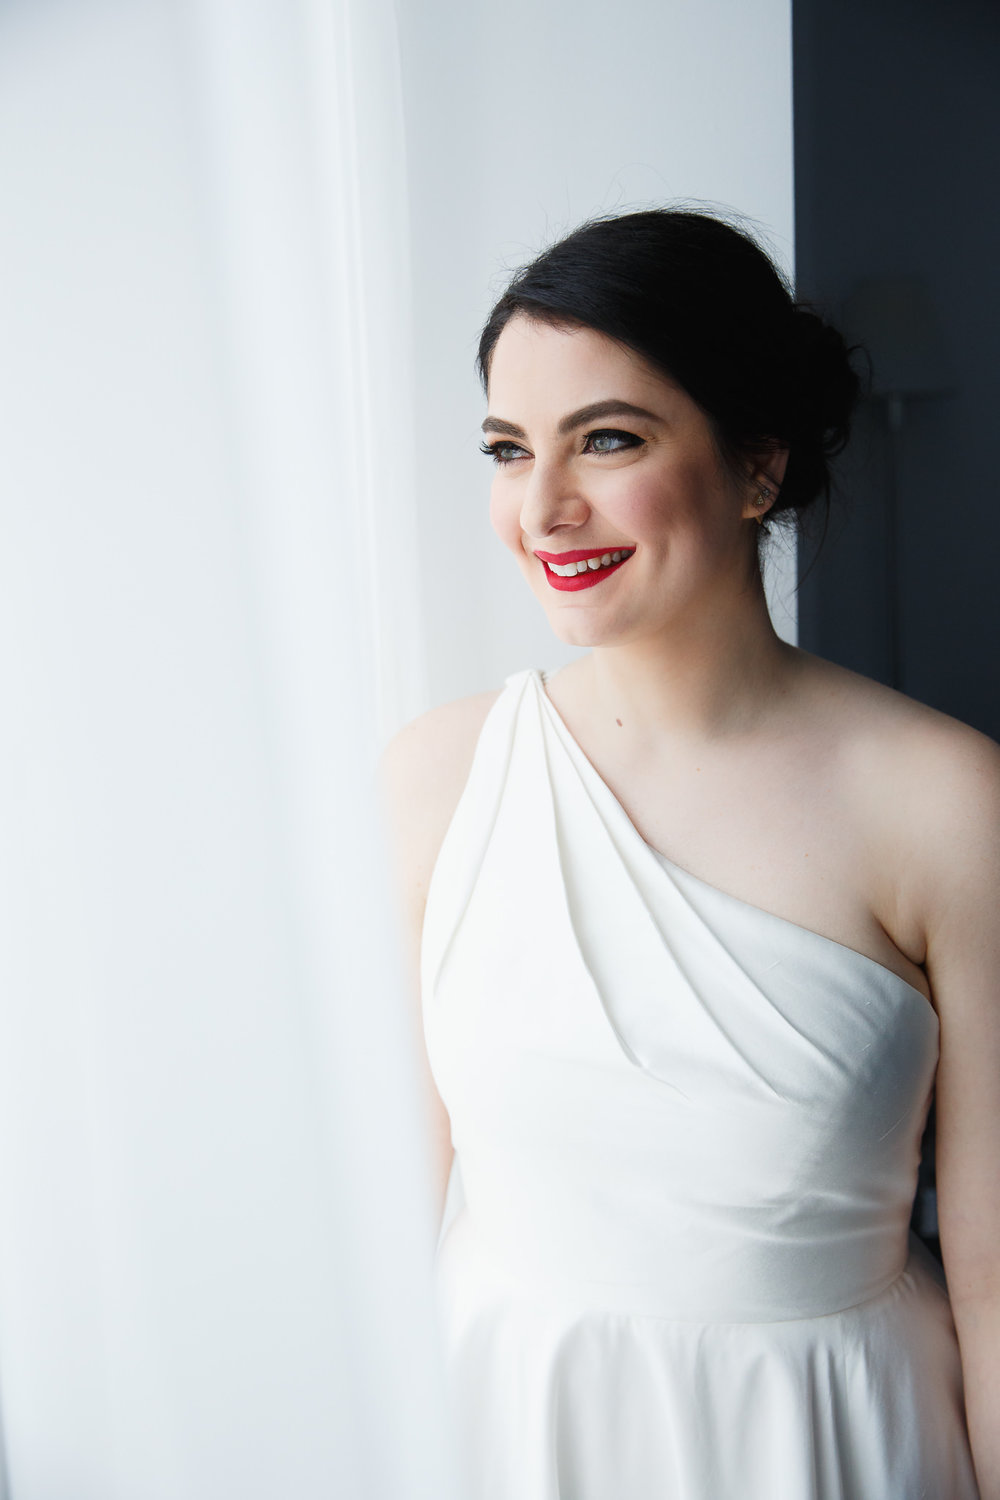 Bride in a one-shoulder dress with red lips looks out the window at the Nomo Soho hotel.